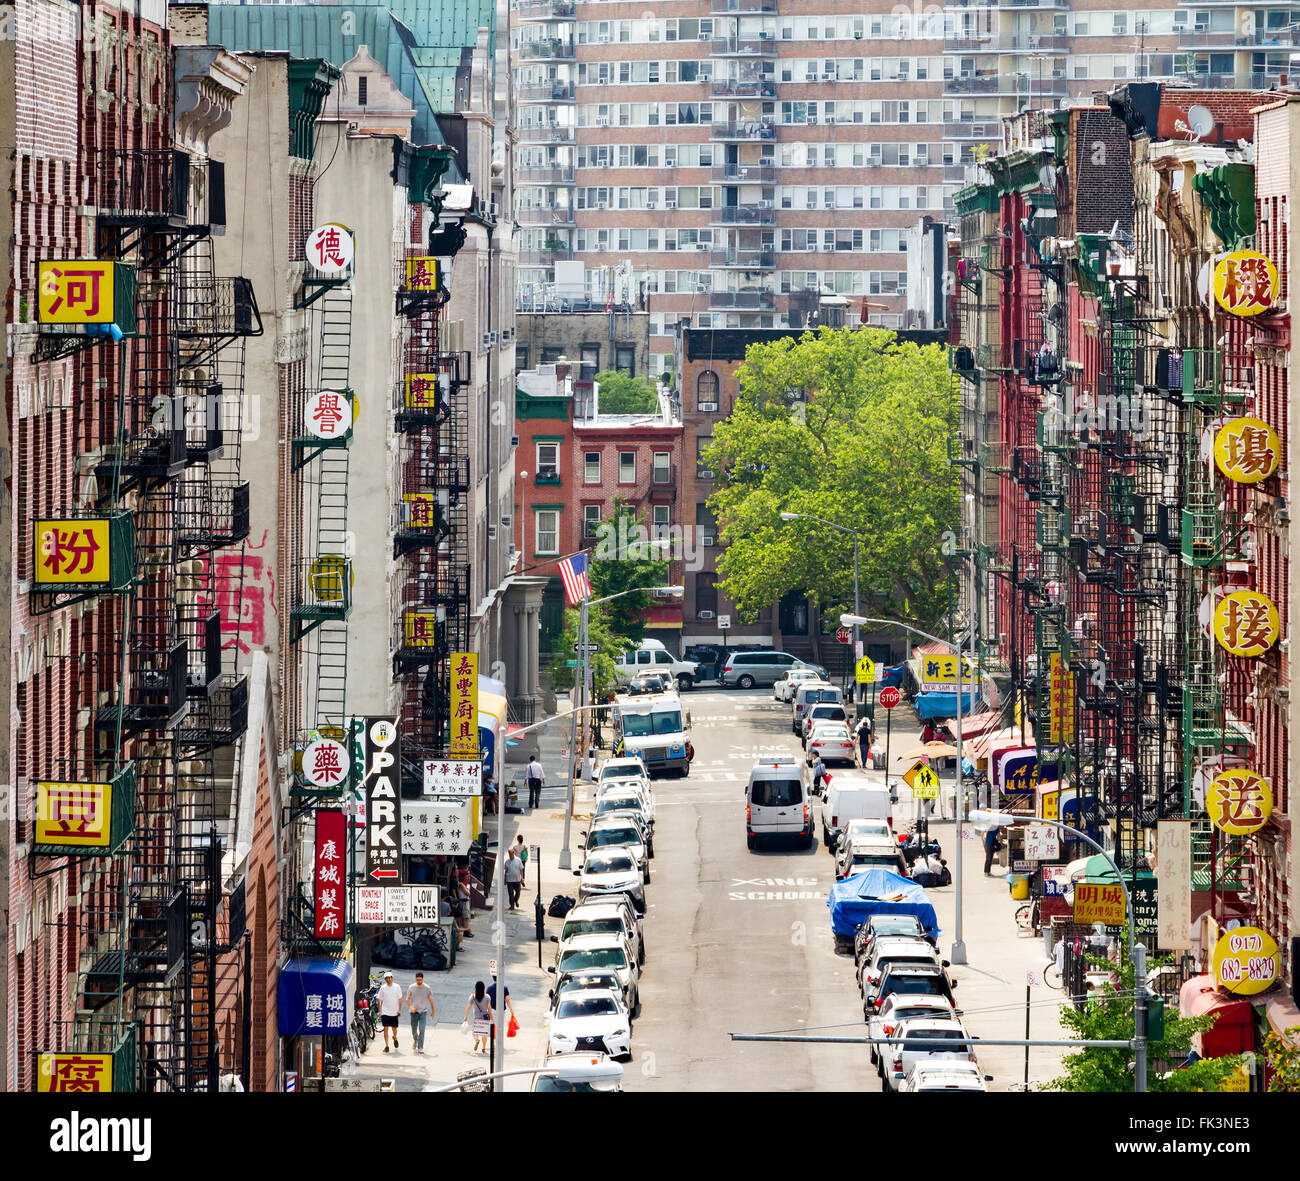 NEW YORK CITY - JULY 2015: Cars and signs line a busy street in Chinatown during the Fourth of July holiday in Manhattan, Stock Photo